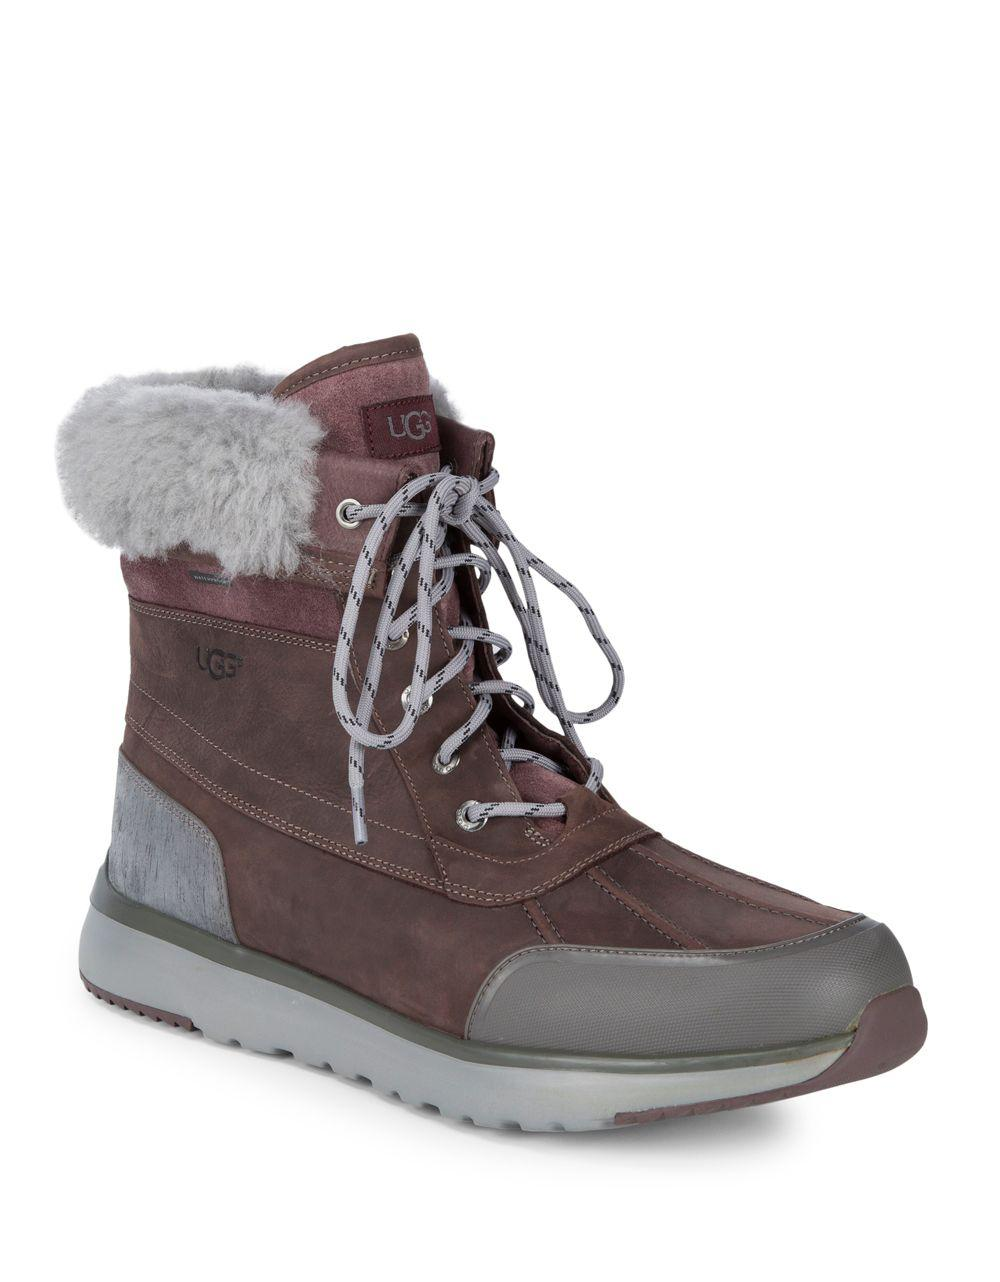 454ae60deff Lyst - UGG Pure Eliasson Winter Boots in Brown